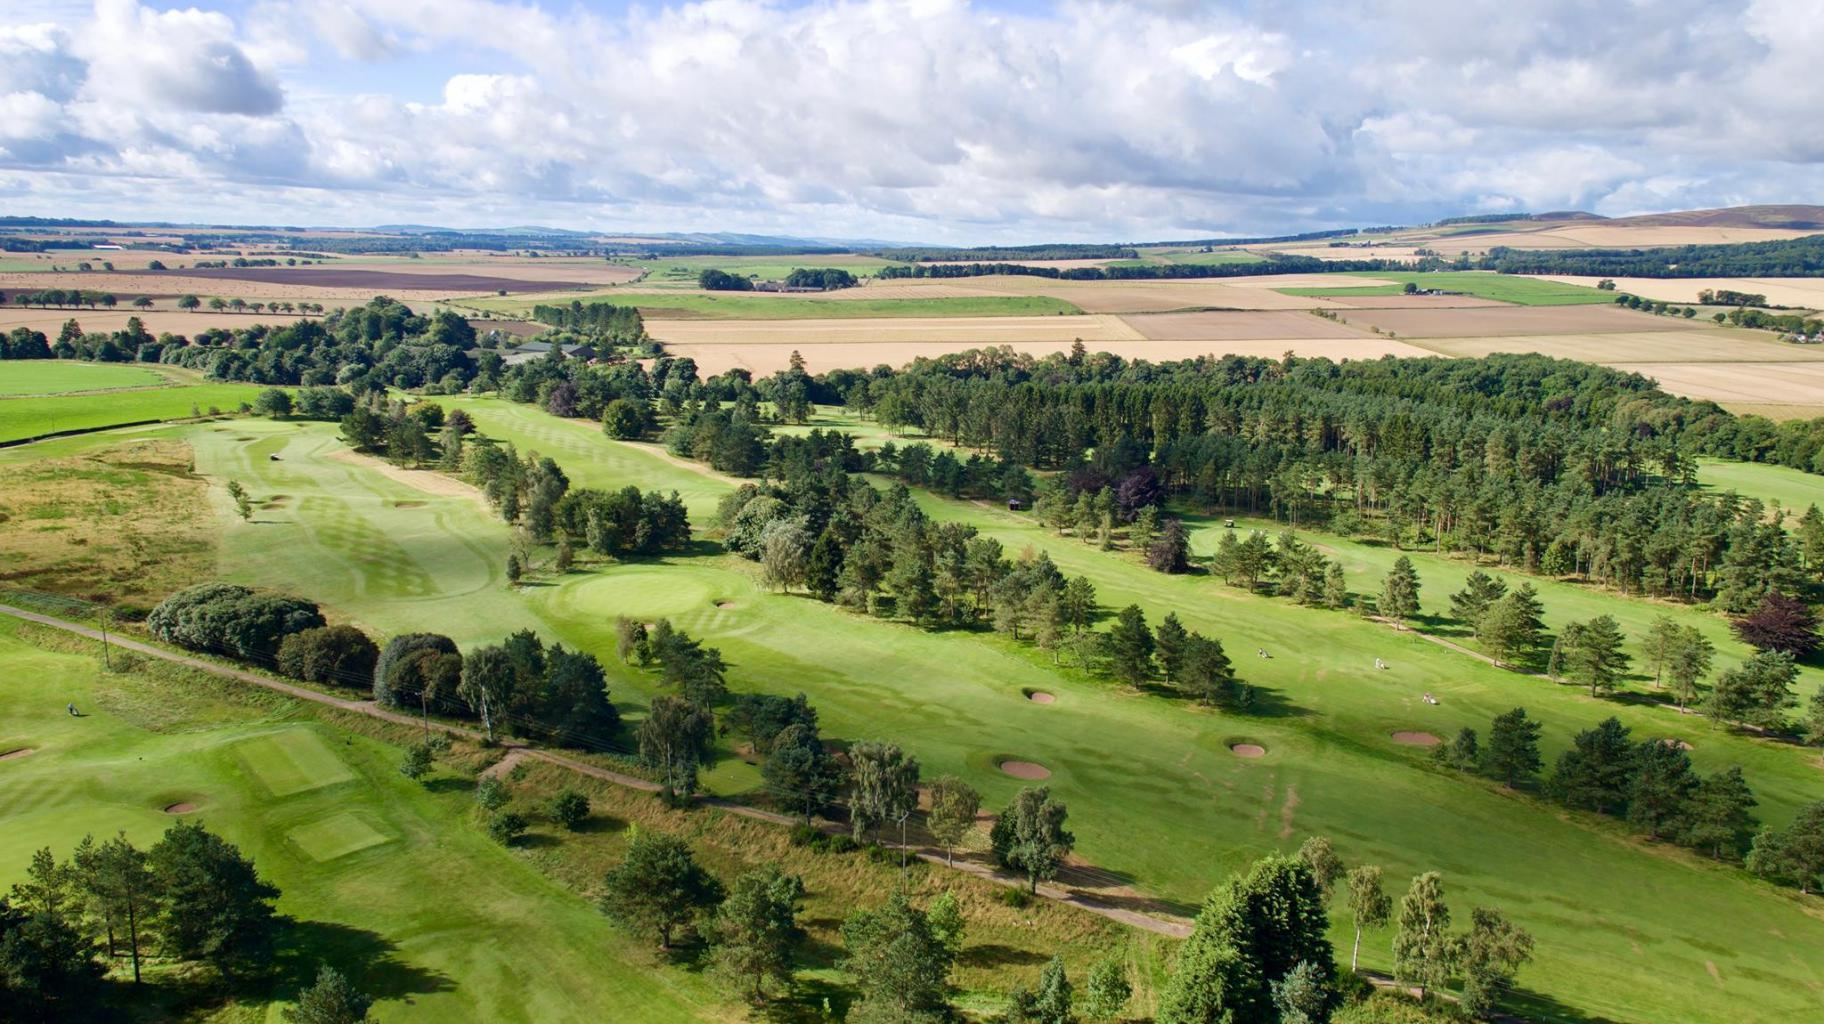 Edzell Golf Club © Edzell Golf Club